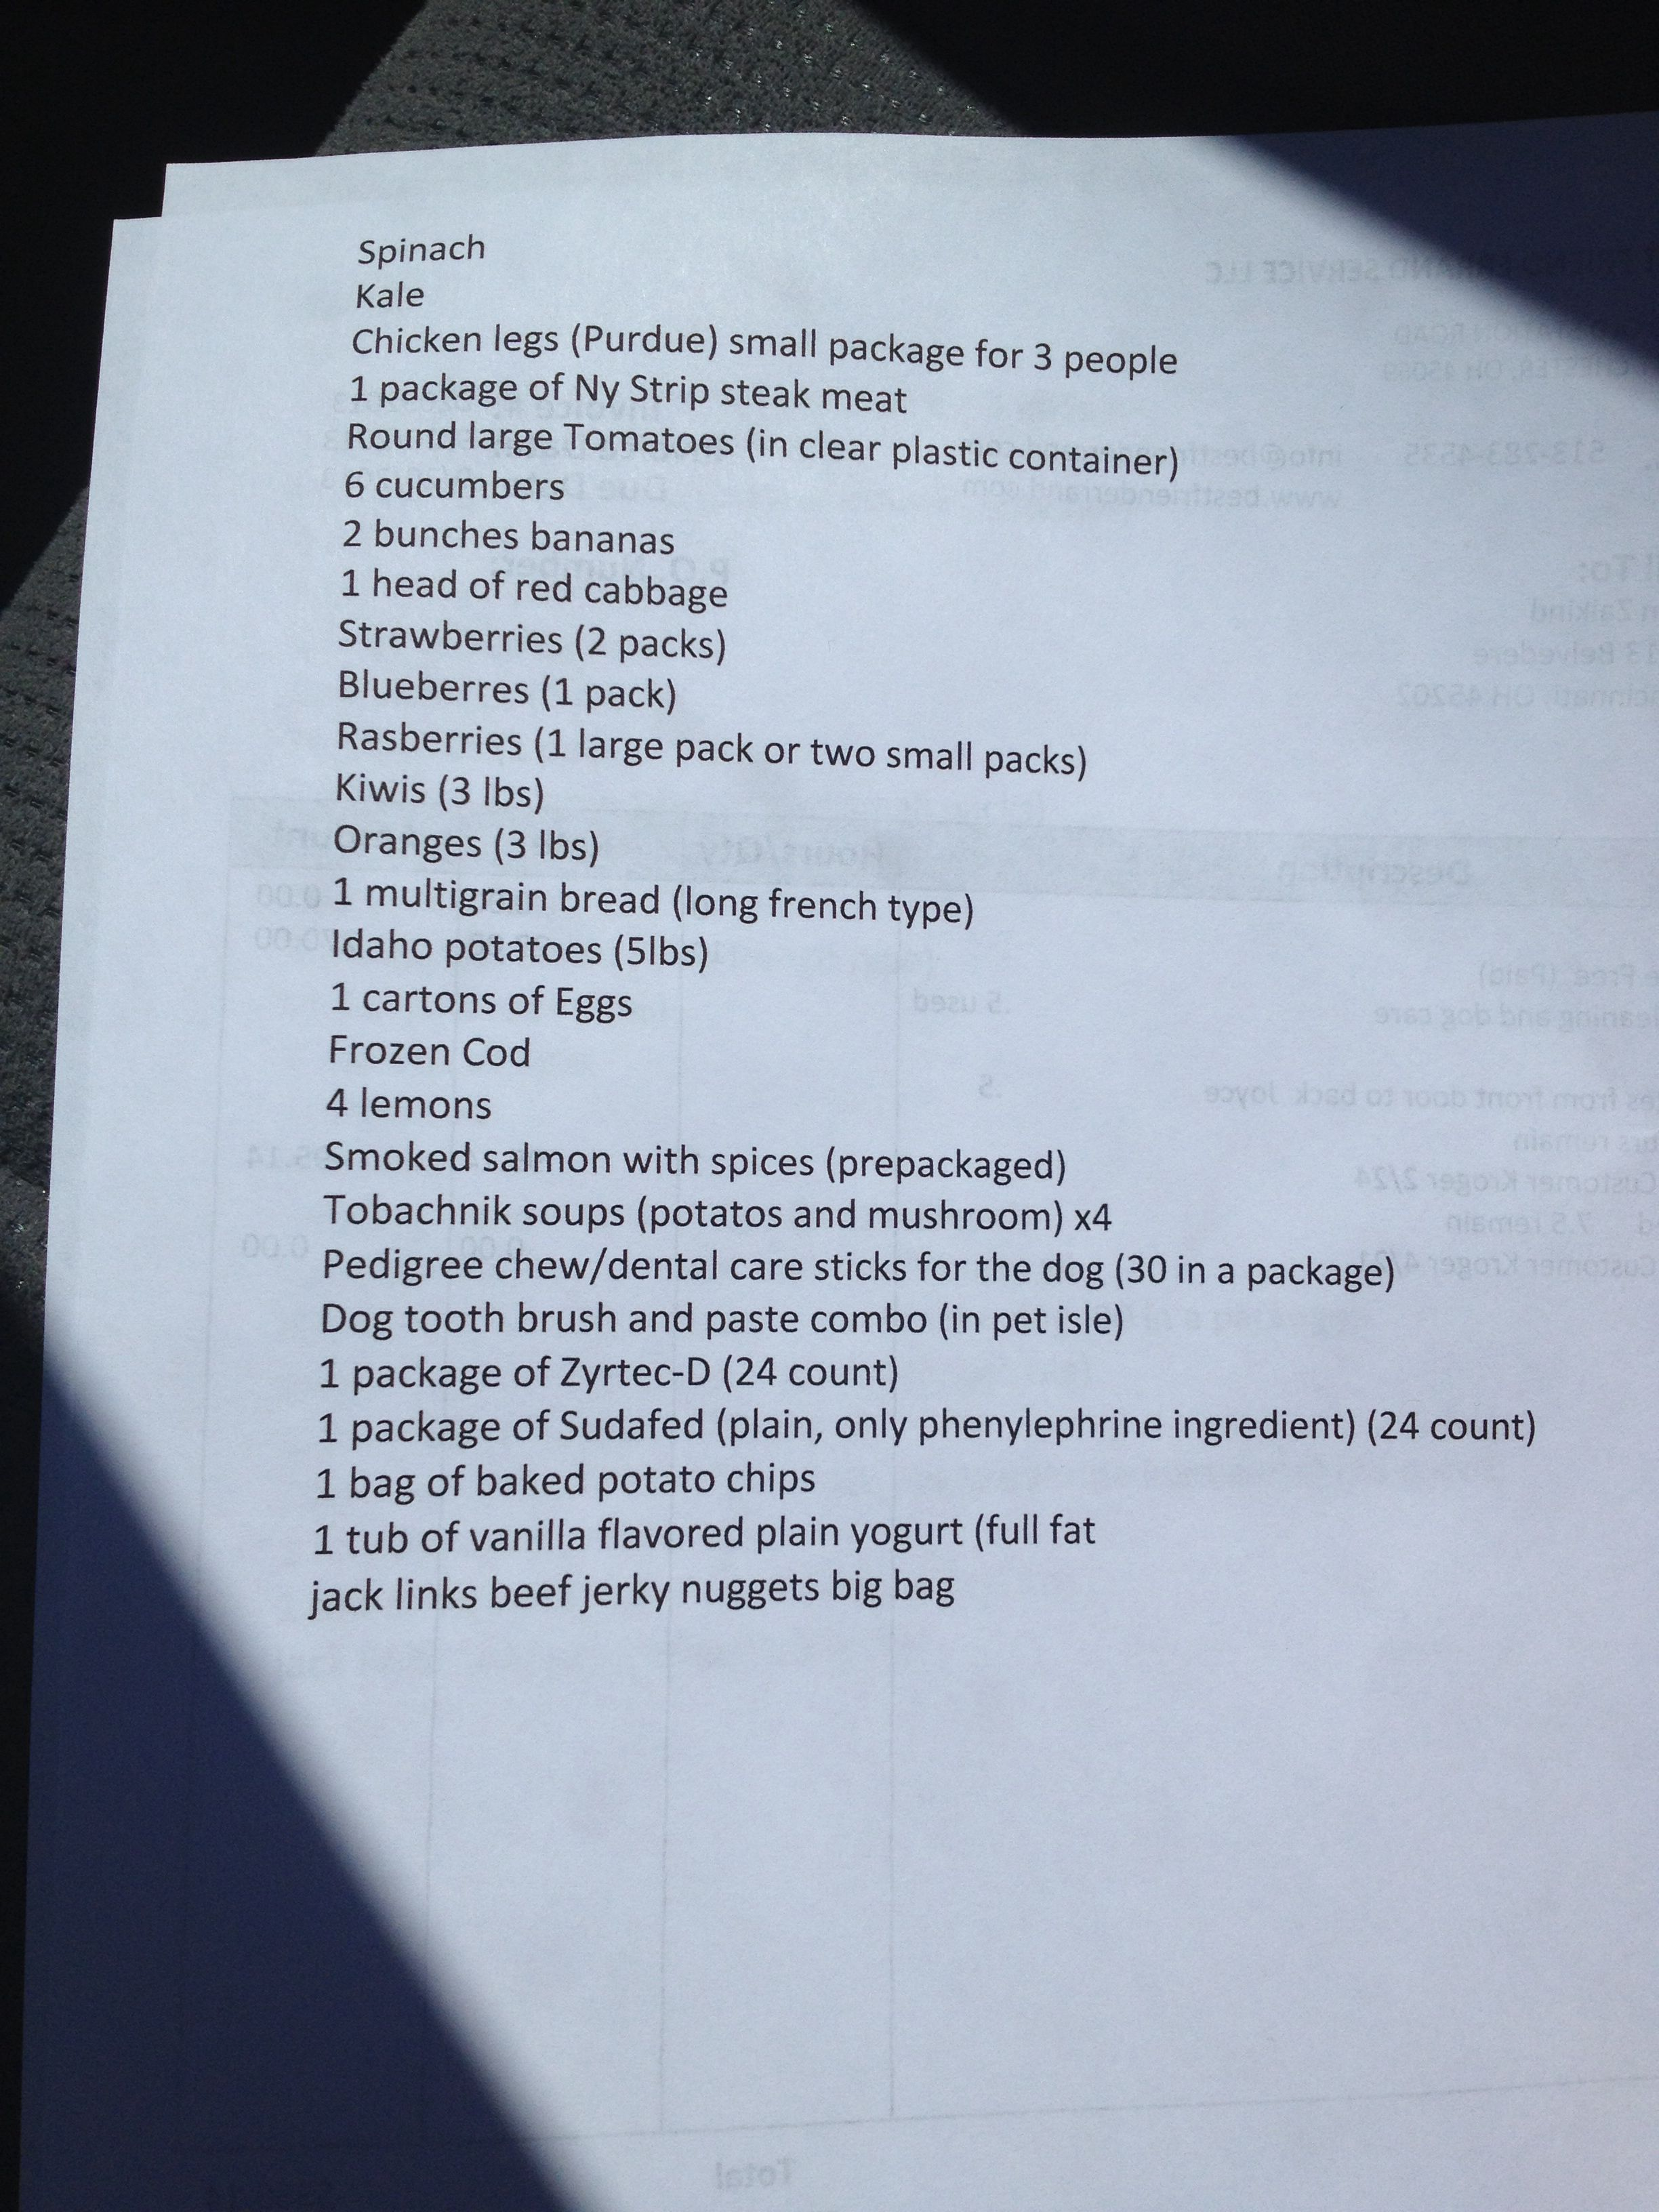 This is a customer grocery list that I will deliver this